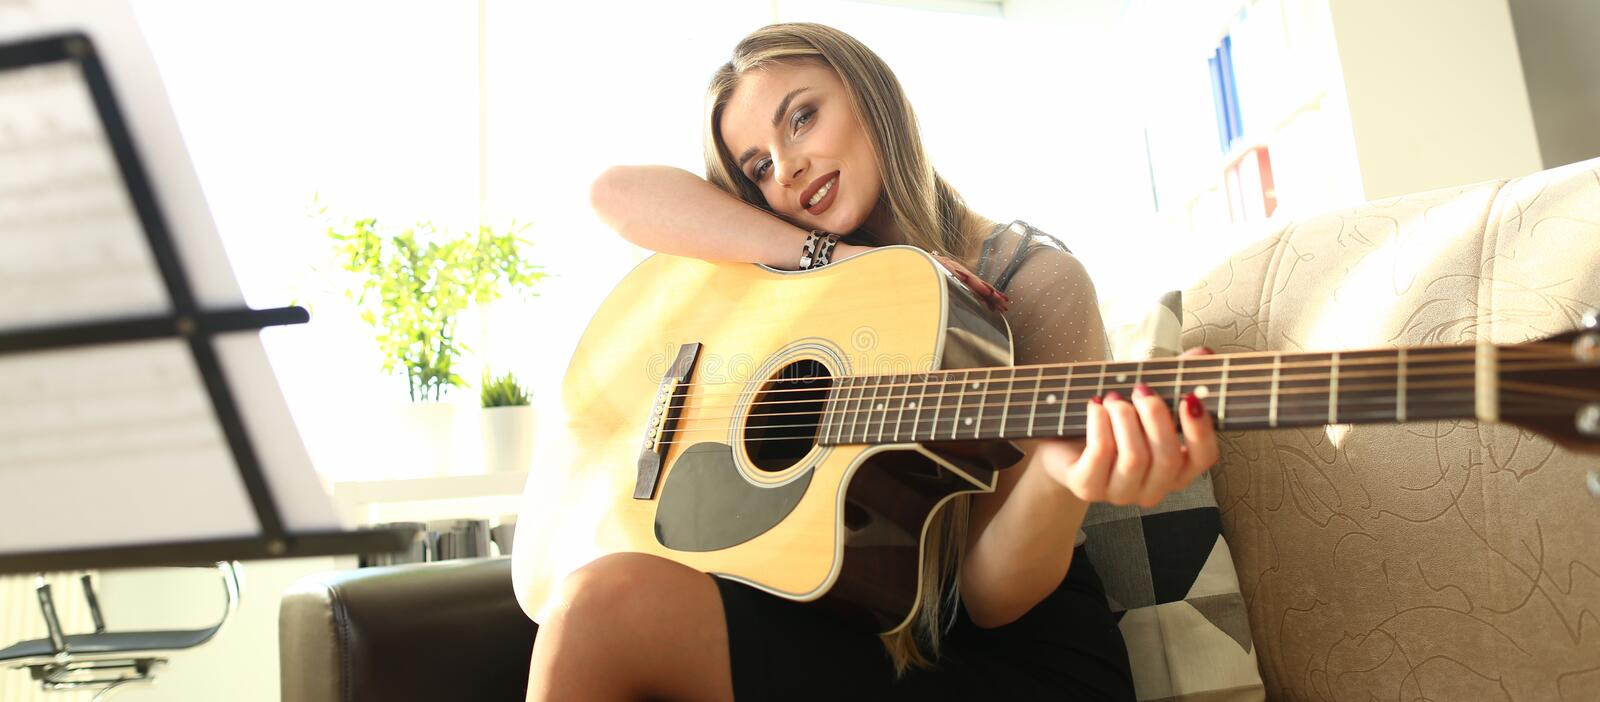 Beautiful Female Musician Art Inspiration Concept. Caucasian Girl at House Lesson. Beautiful Woman Composing Melody Playing Chords on Acoustic Guitar. Musical royalty free stock photography